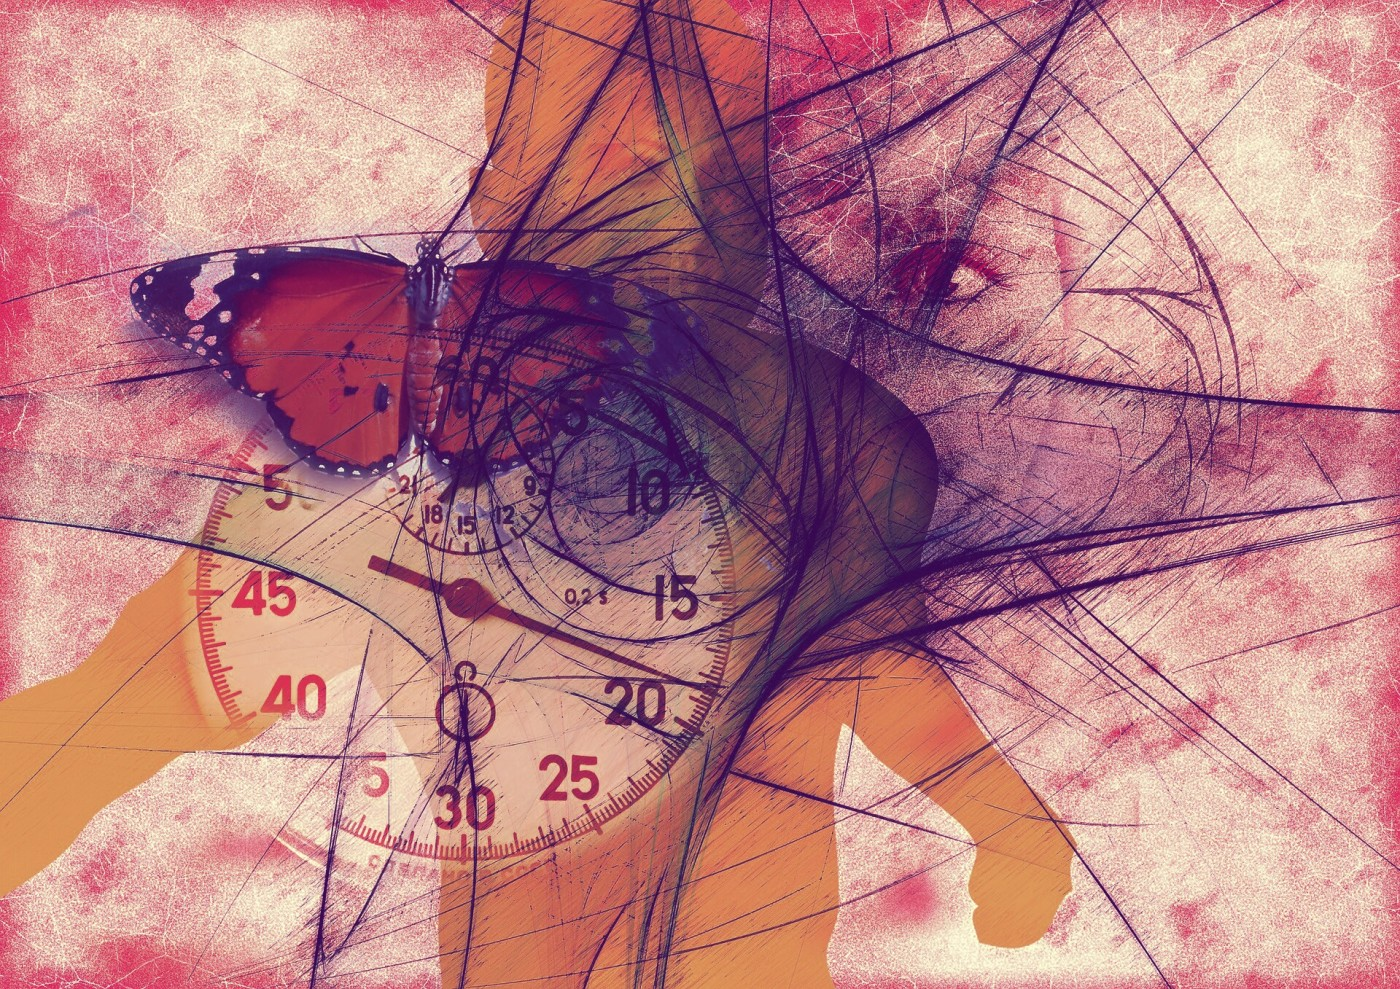 Marianne Moore, poem, butterfly, buddah, eye, clock, time, collage, poetic therapy, diligence, magic, flight, progress